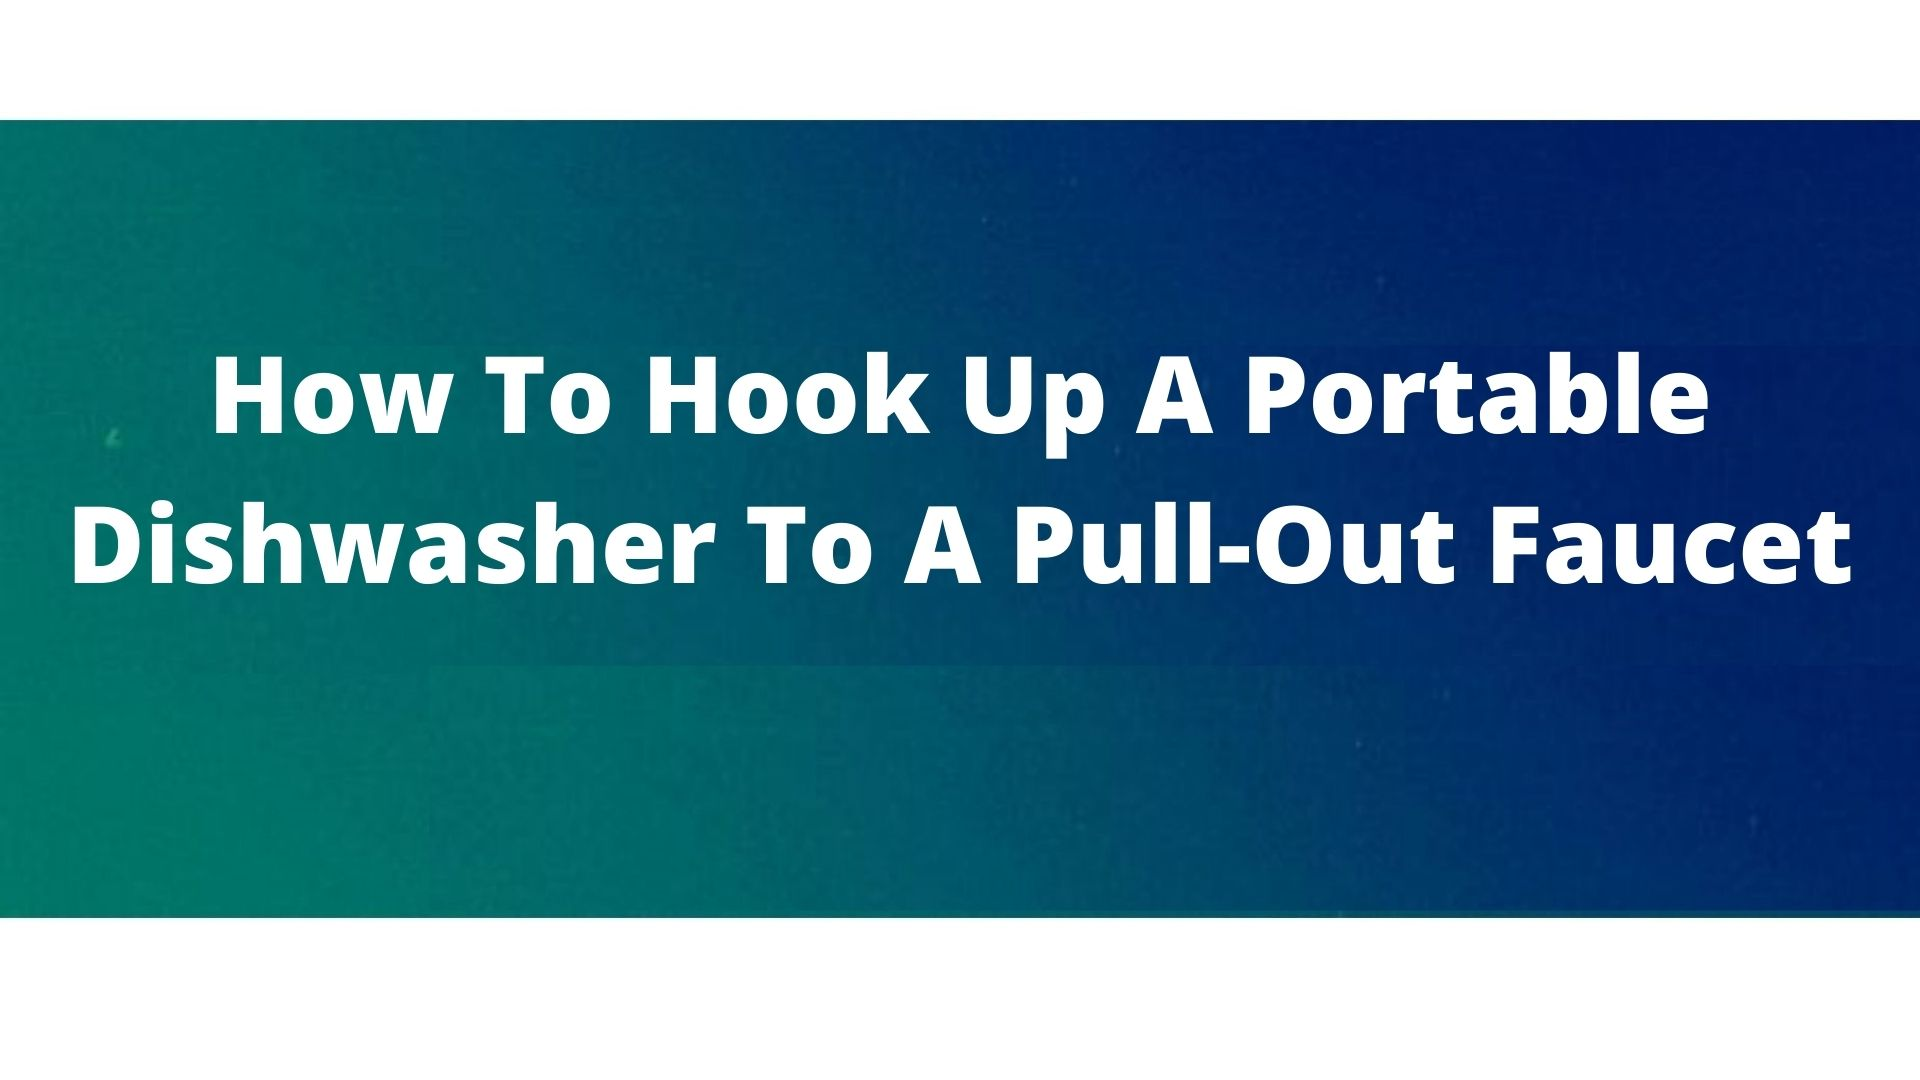 Tips to attach the dishwasher with pull-out faucet